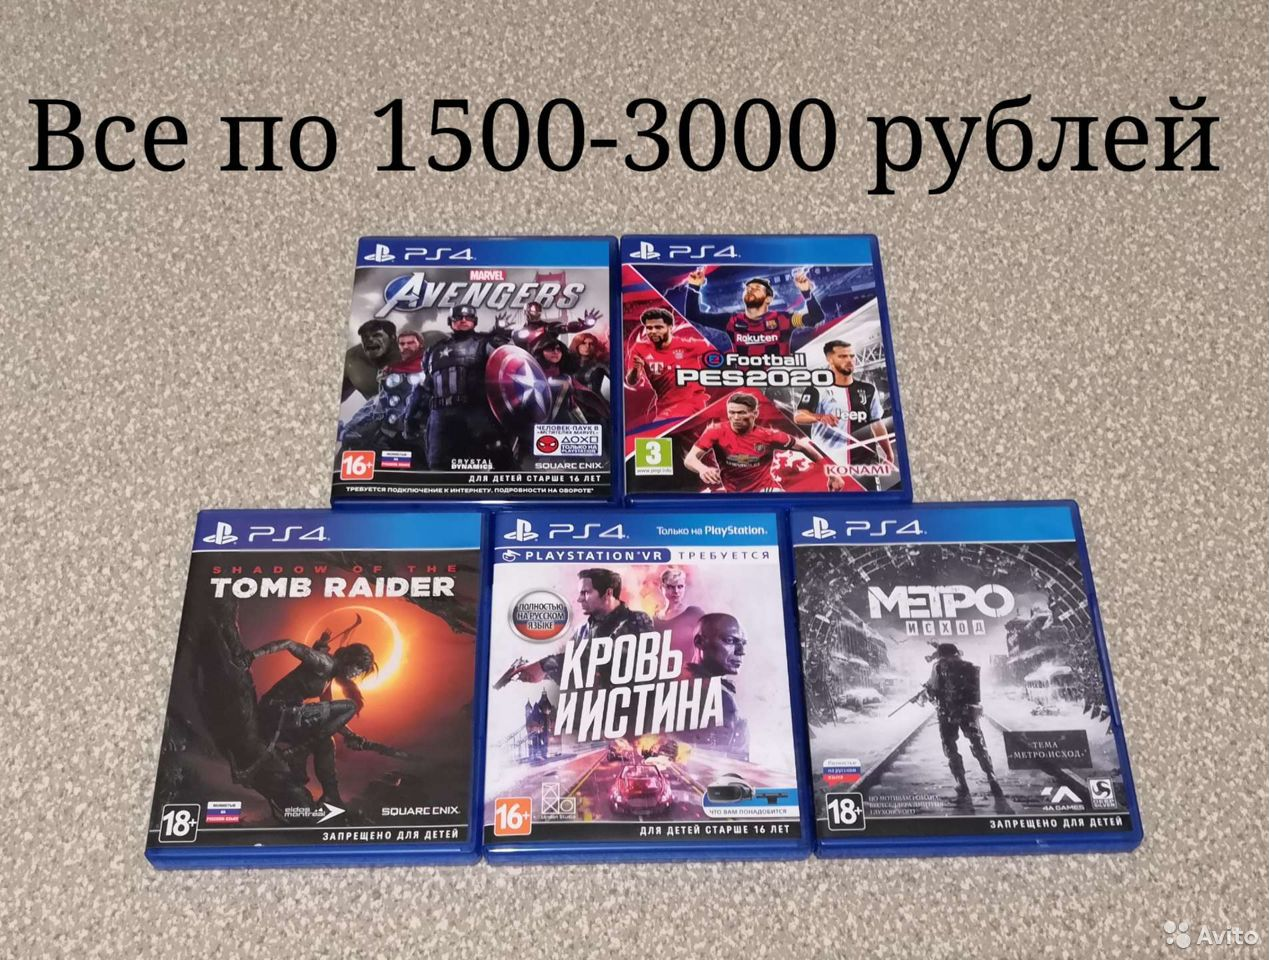 Discs for Playstation 4